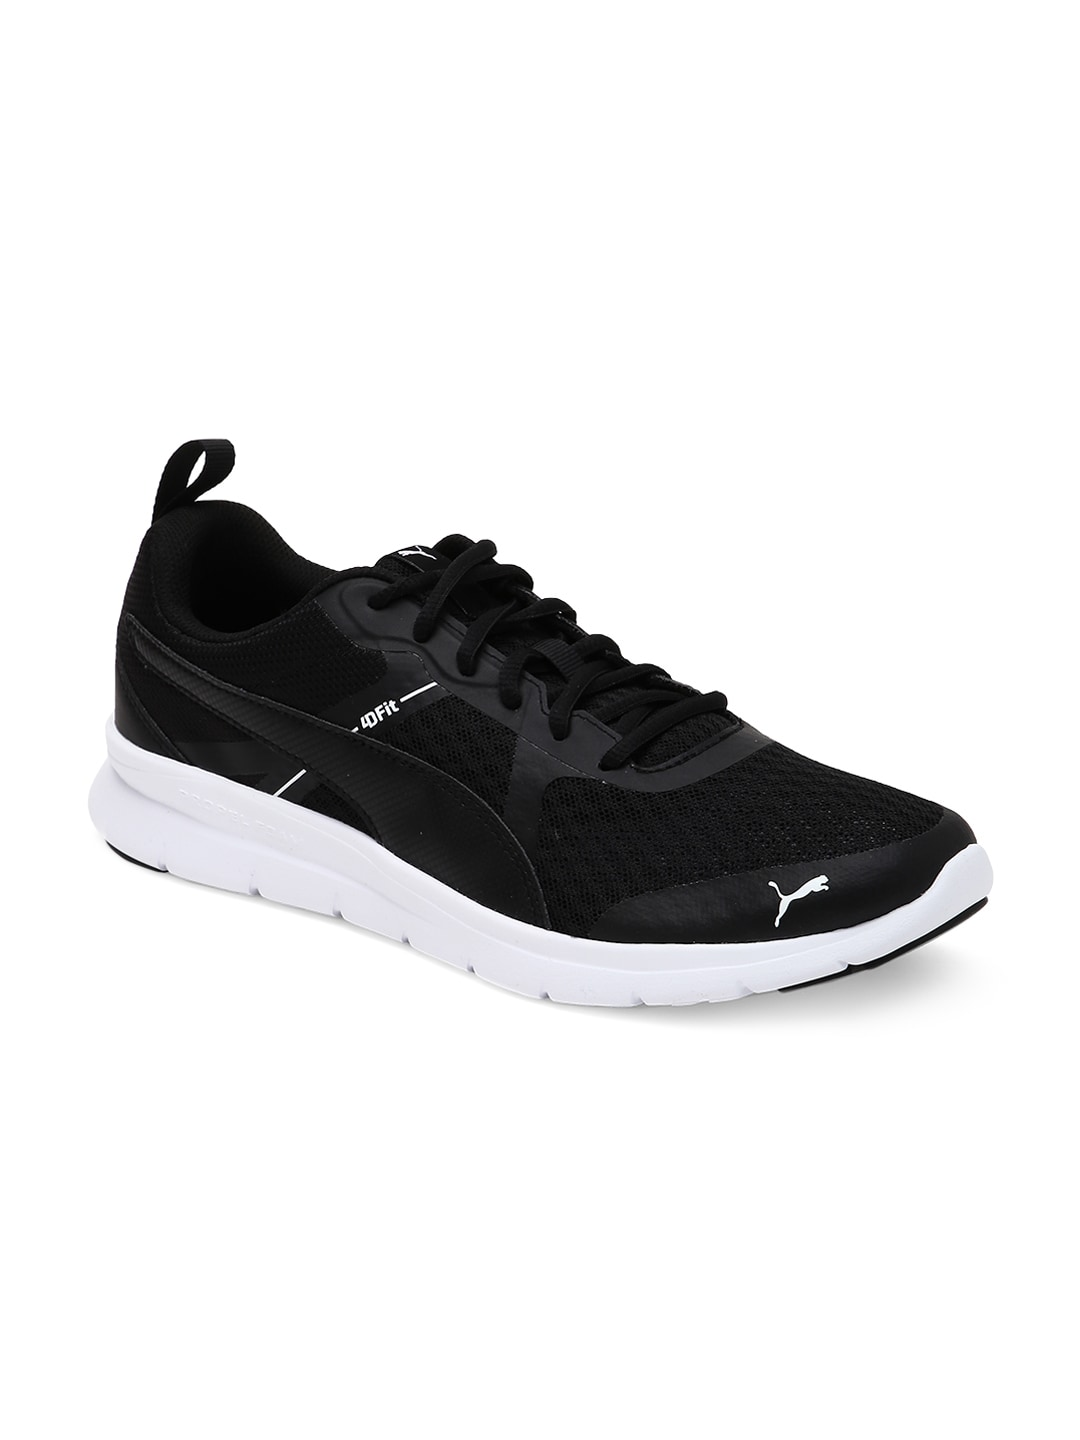 Shoes Shoes Buy Online Menamp; in Puma India for Women Puma ON8kXZnw0P